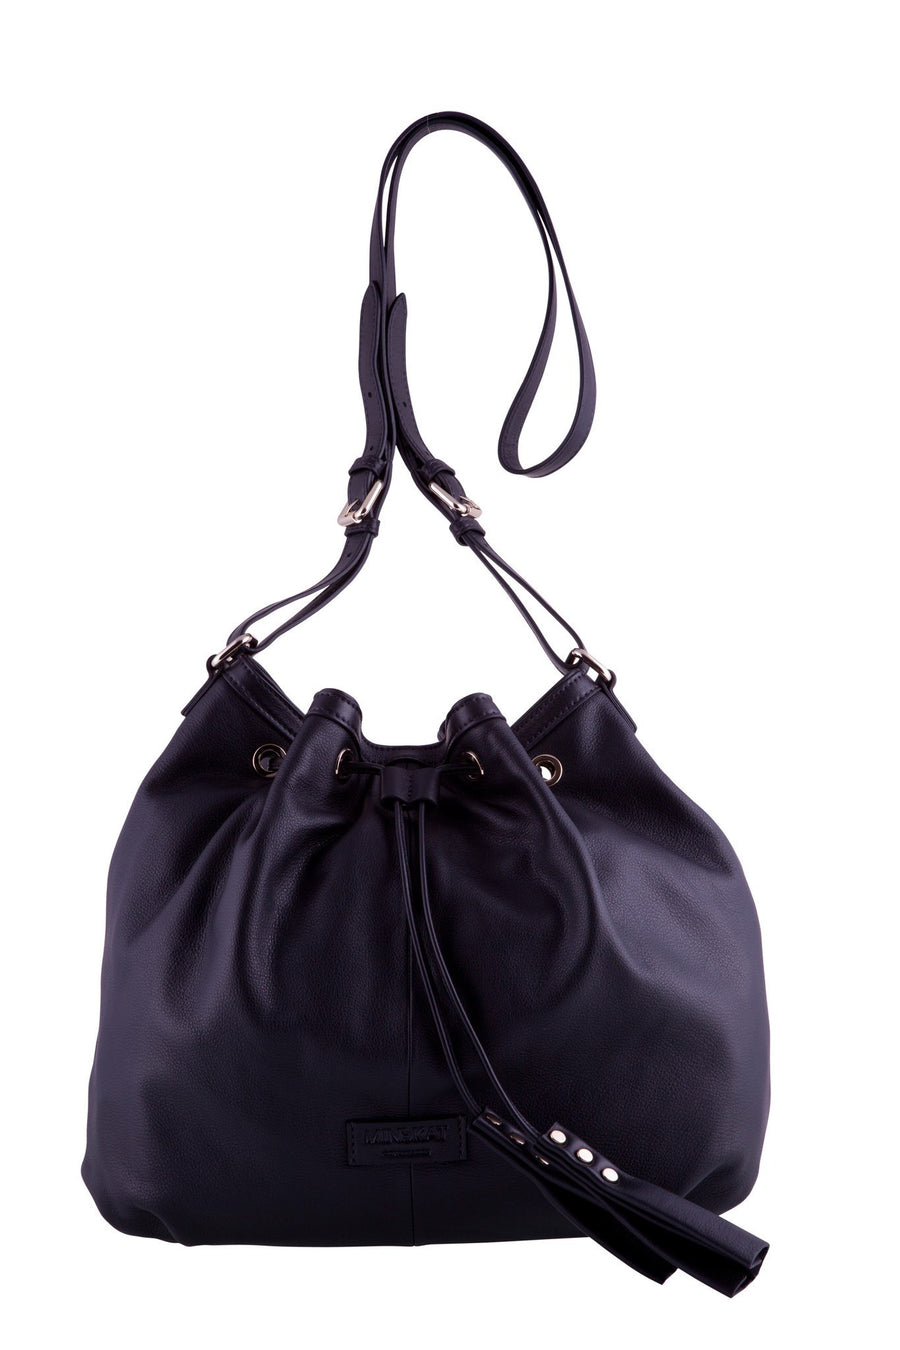 dana-bucket-bag-by-minskat-copenhagen